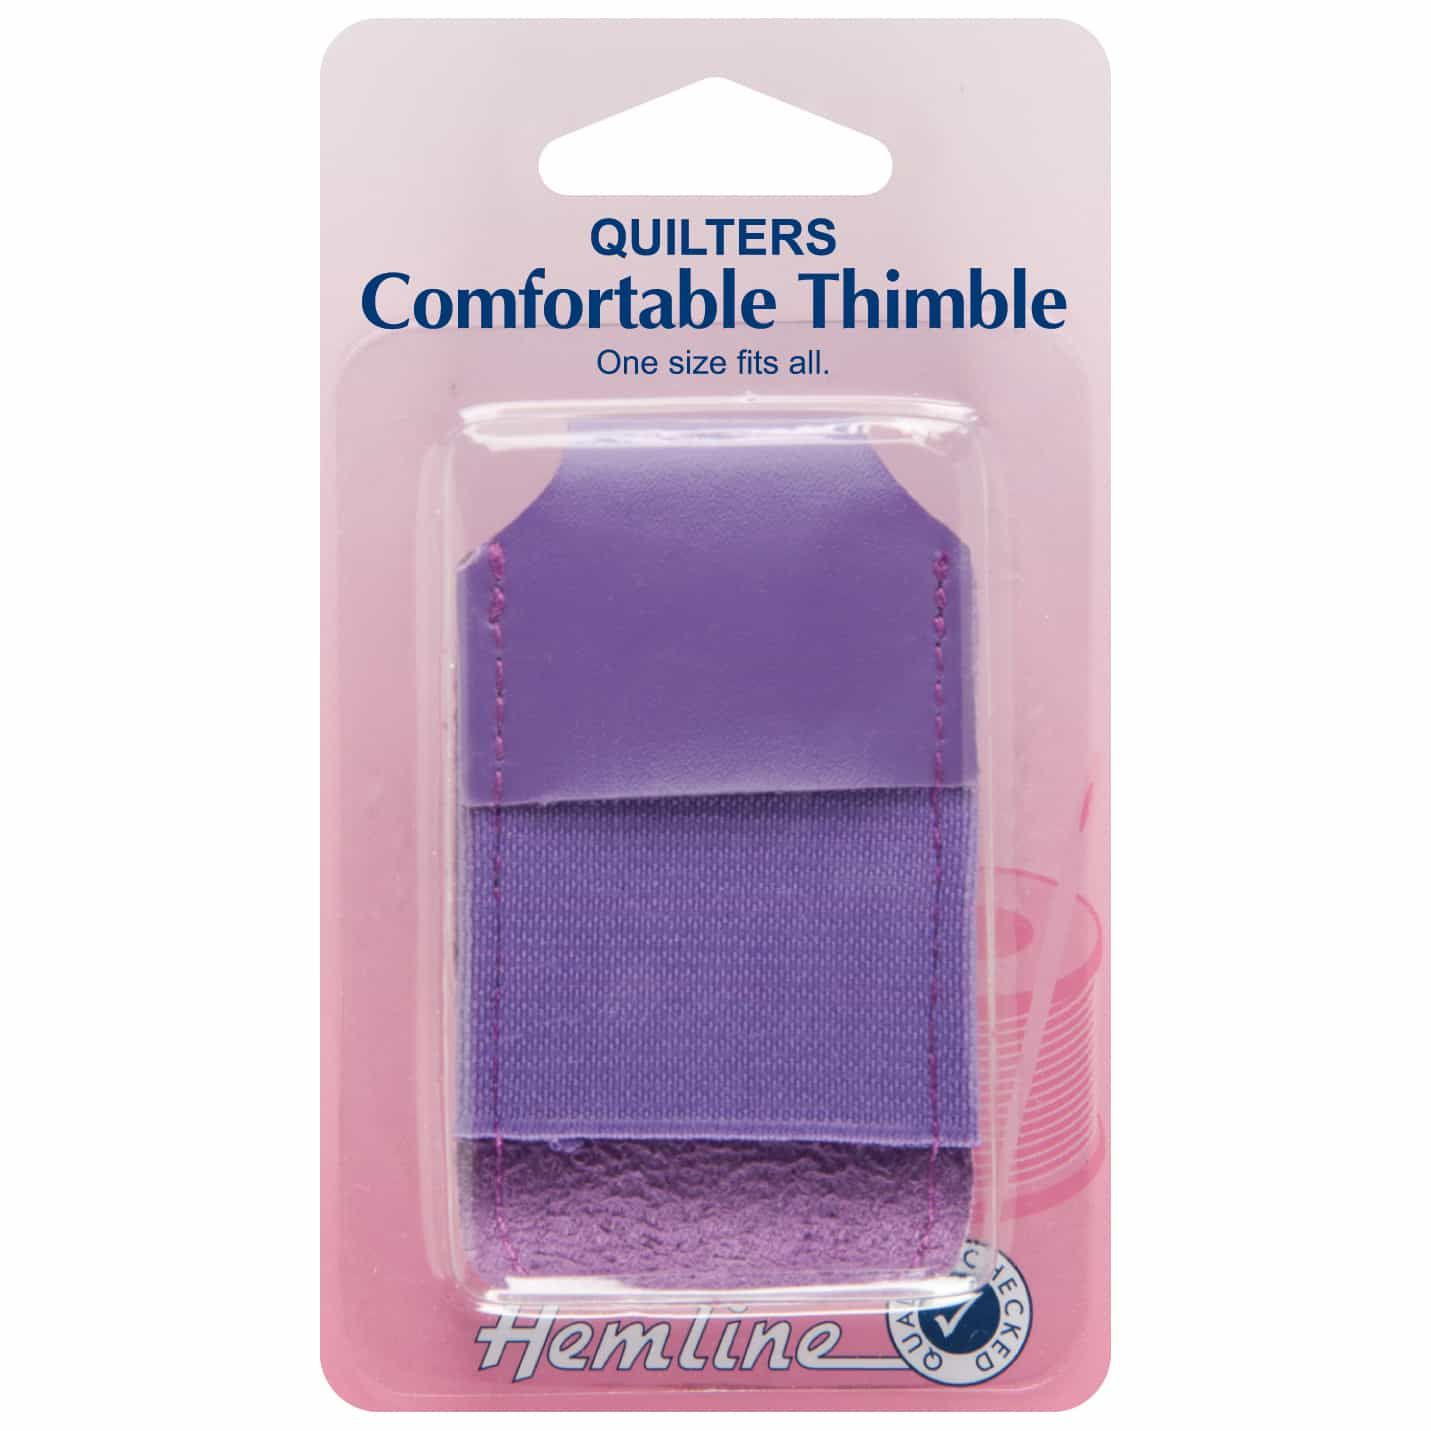 Quilters Comfort Thimble